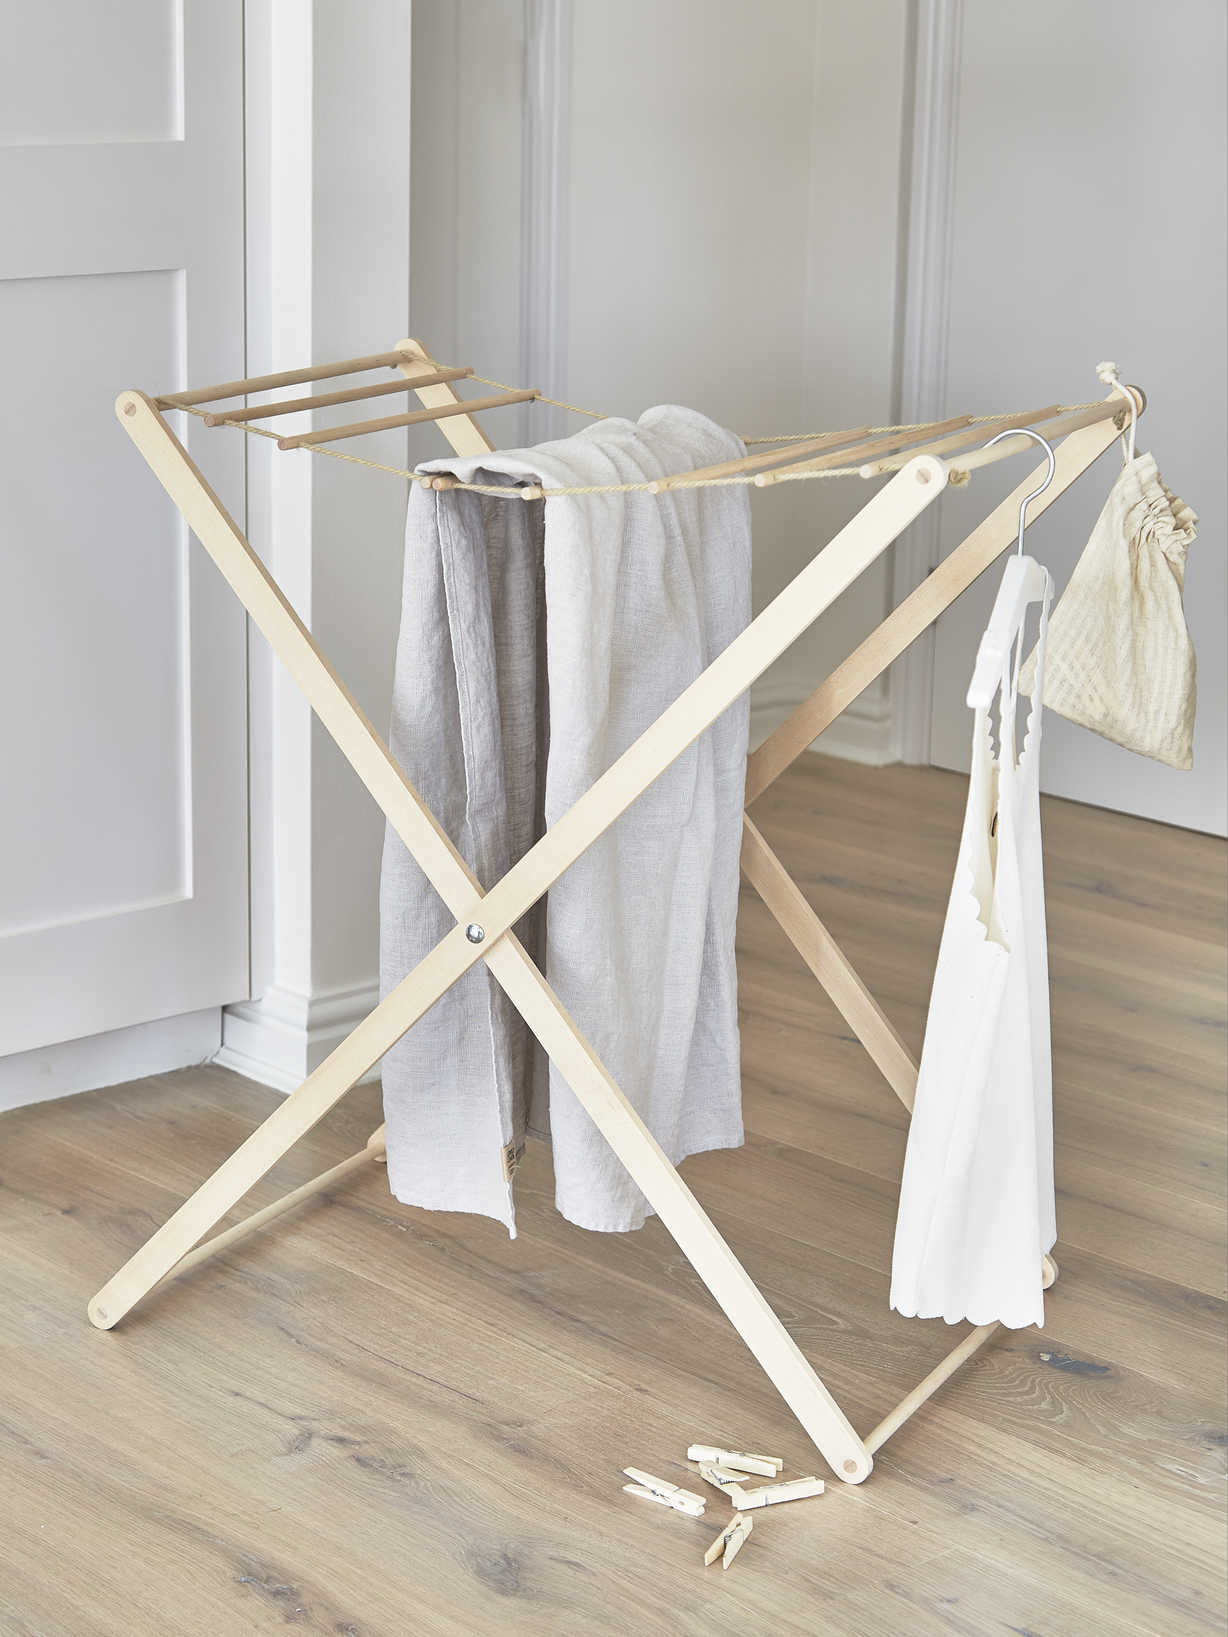 Nordic House Birch Wood Drying Rack